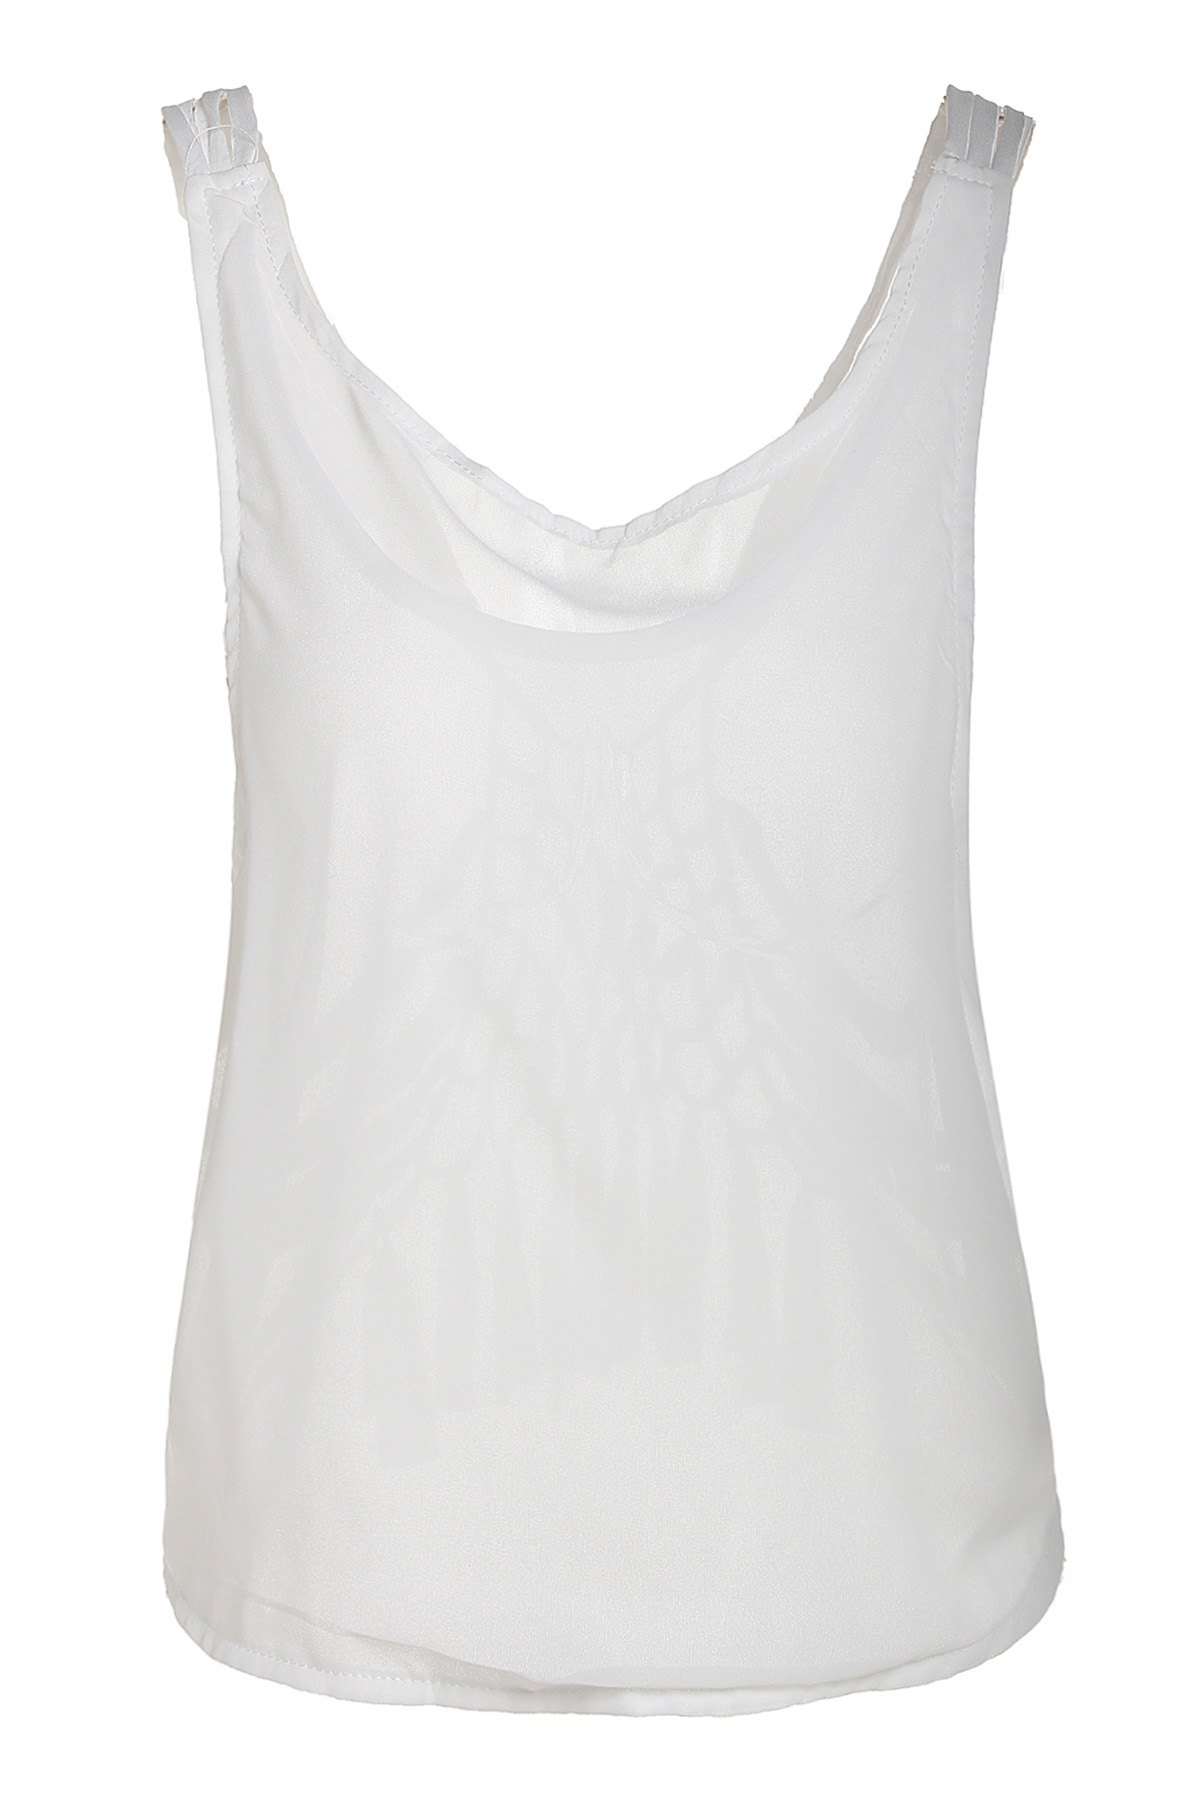 Sexy Scoop Neck See-Through Hollow Out Women's Beachwear - WHITE M